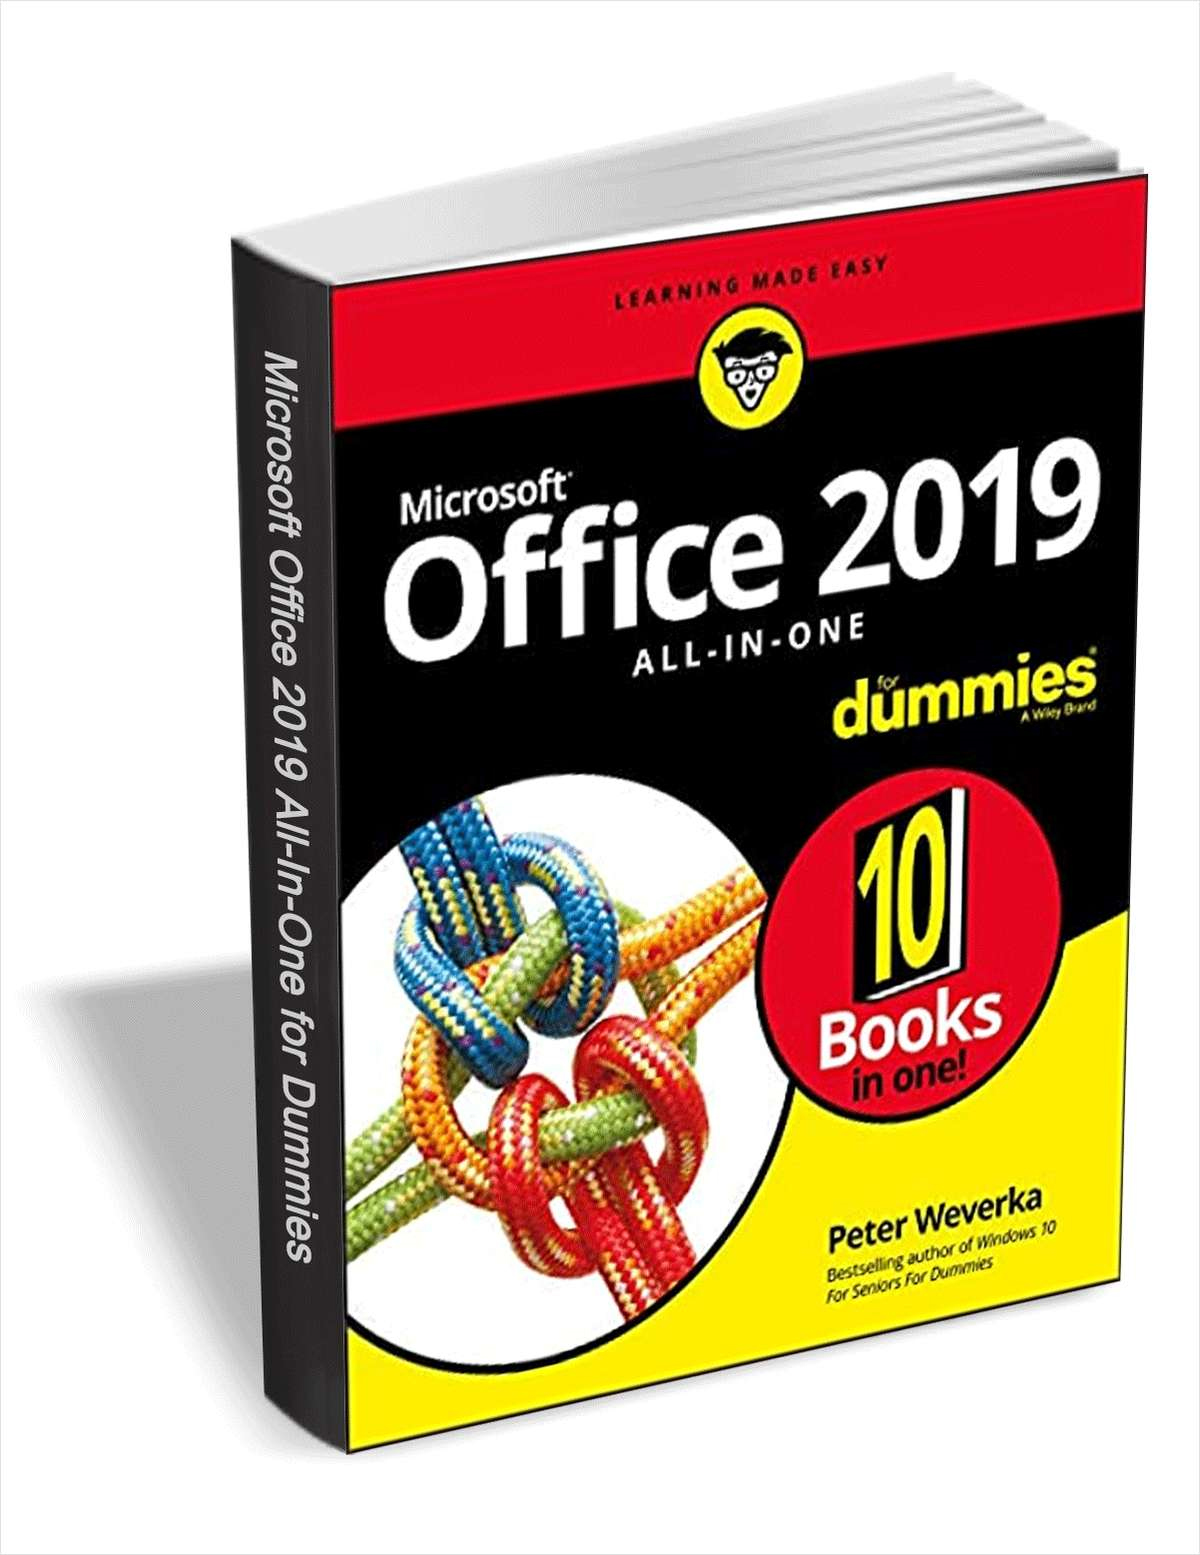 Office 2019 All-in-One For Dummies ($24.00 Value) FREE for a Limited Time Screenshot